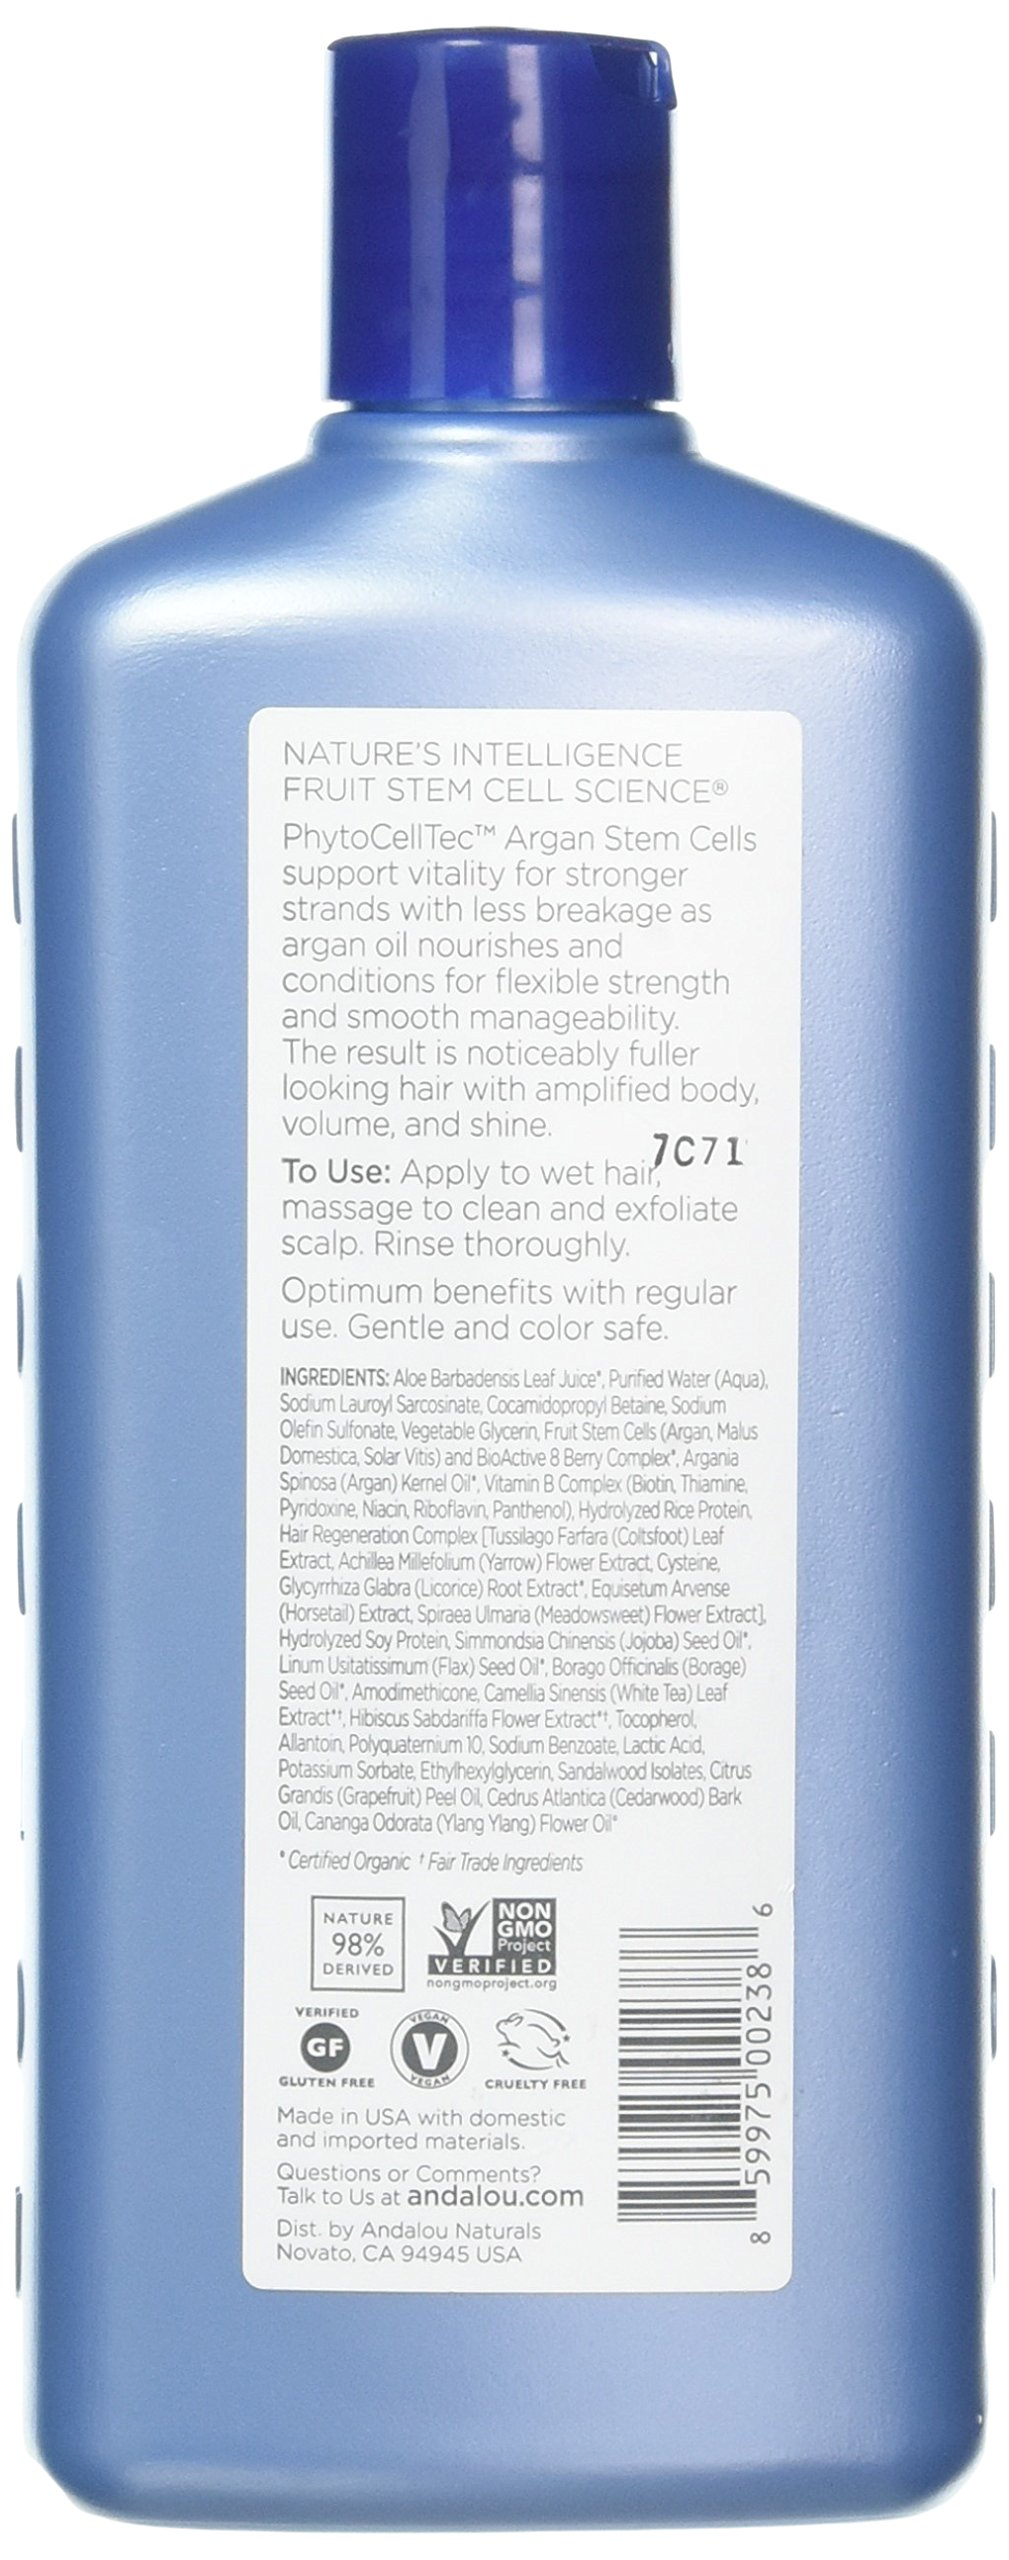 Andalou Naturals Argan Stem Cell Age Defying Shampoo, 11.5 Ounce by Andalou Naturals (Image #2)